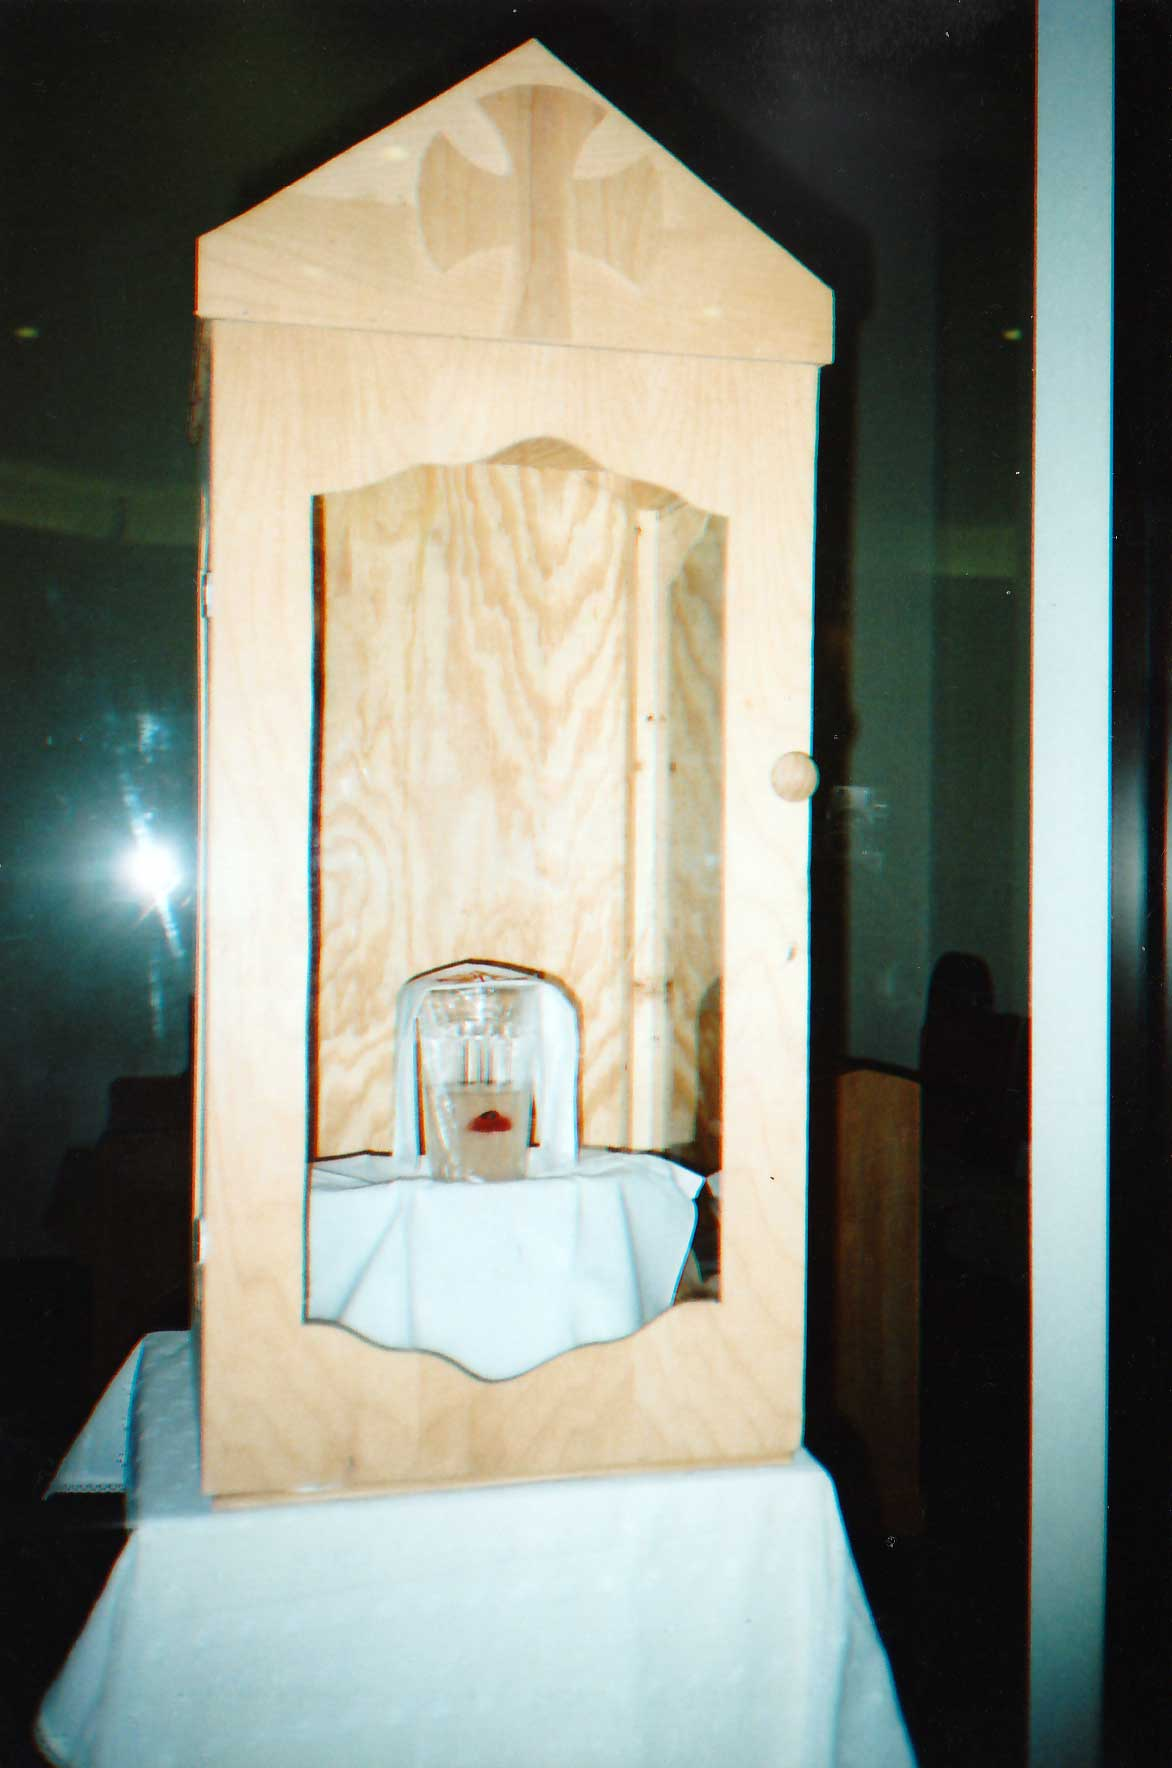 Dallas Eucharistic Miracle in the glass